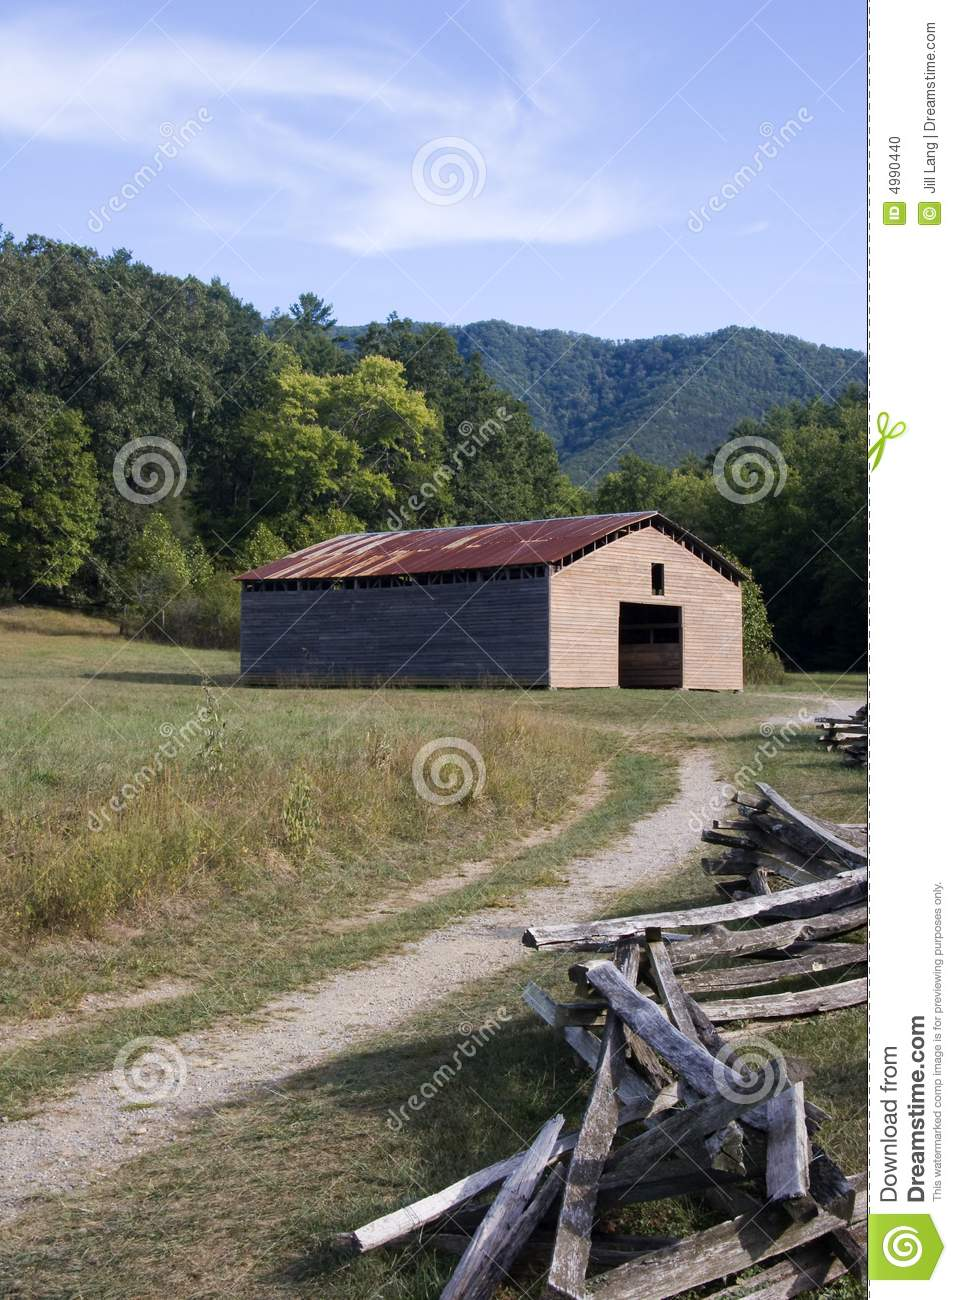 Old Barn And Split Rail Fence Stock Photo - Image of rust